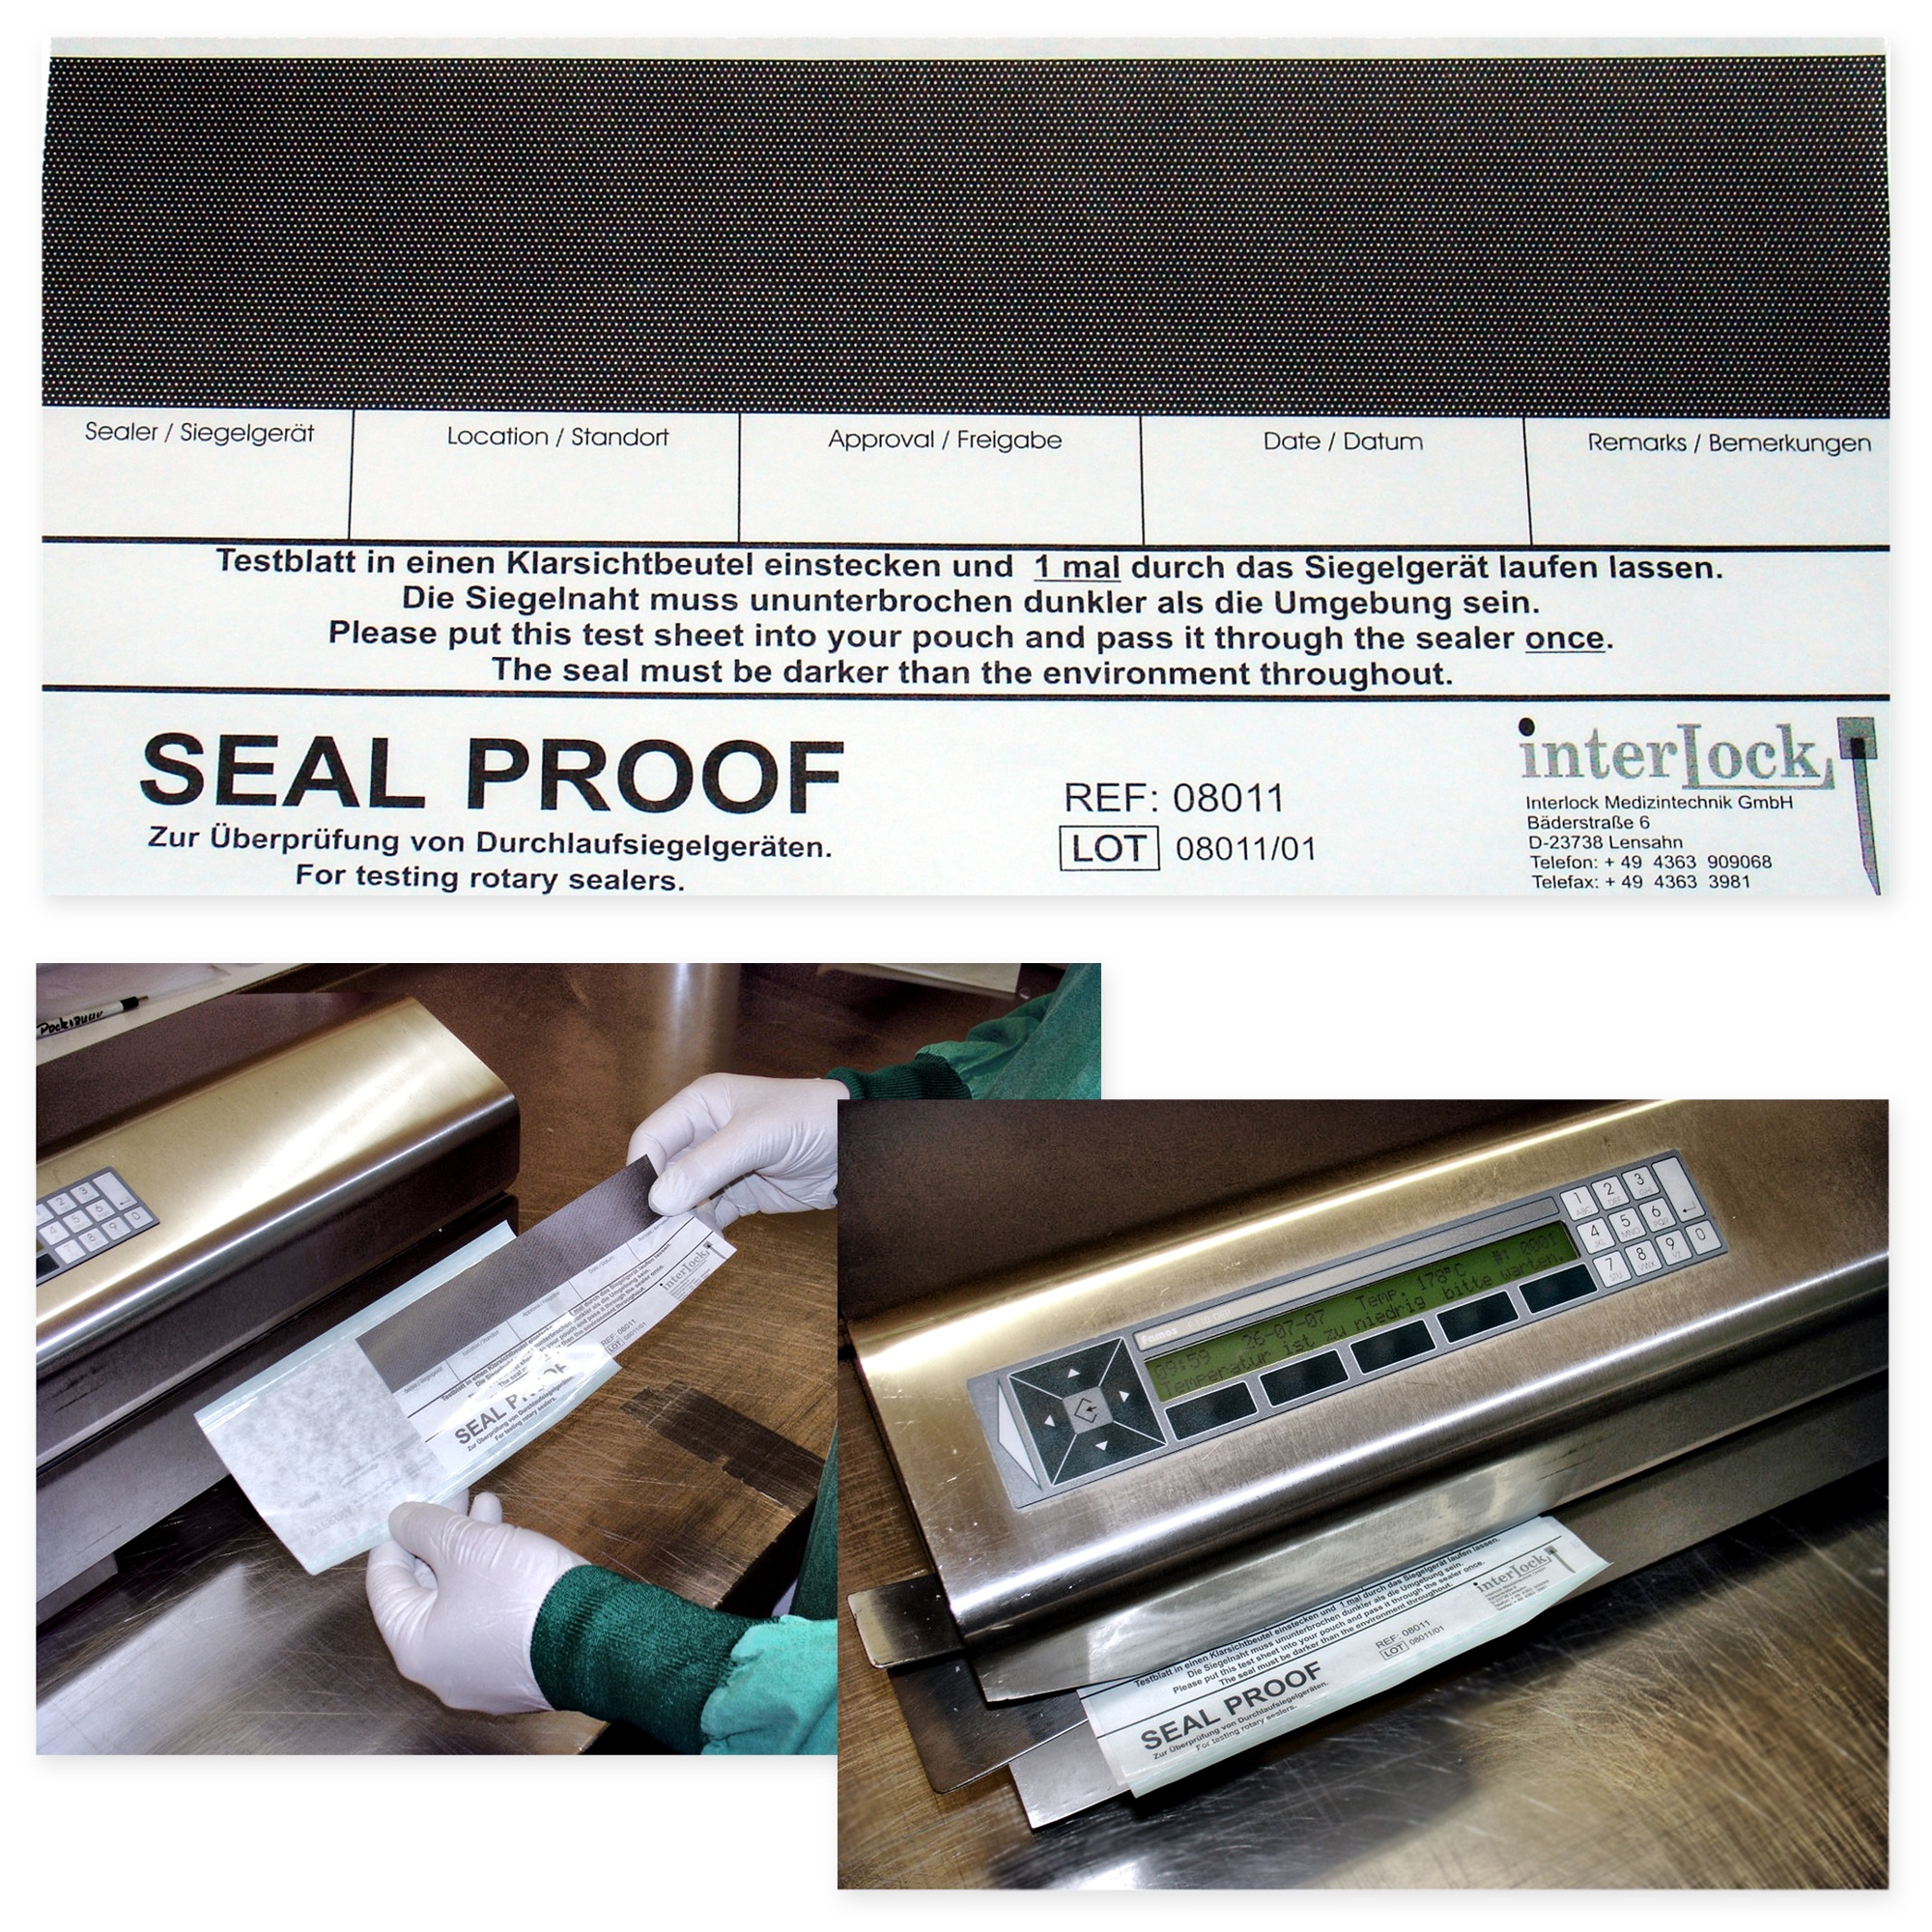 SEAL PROOF Image